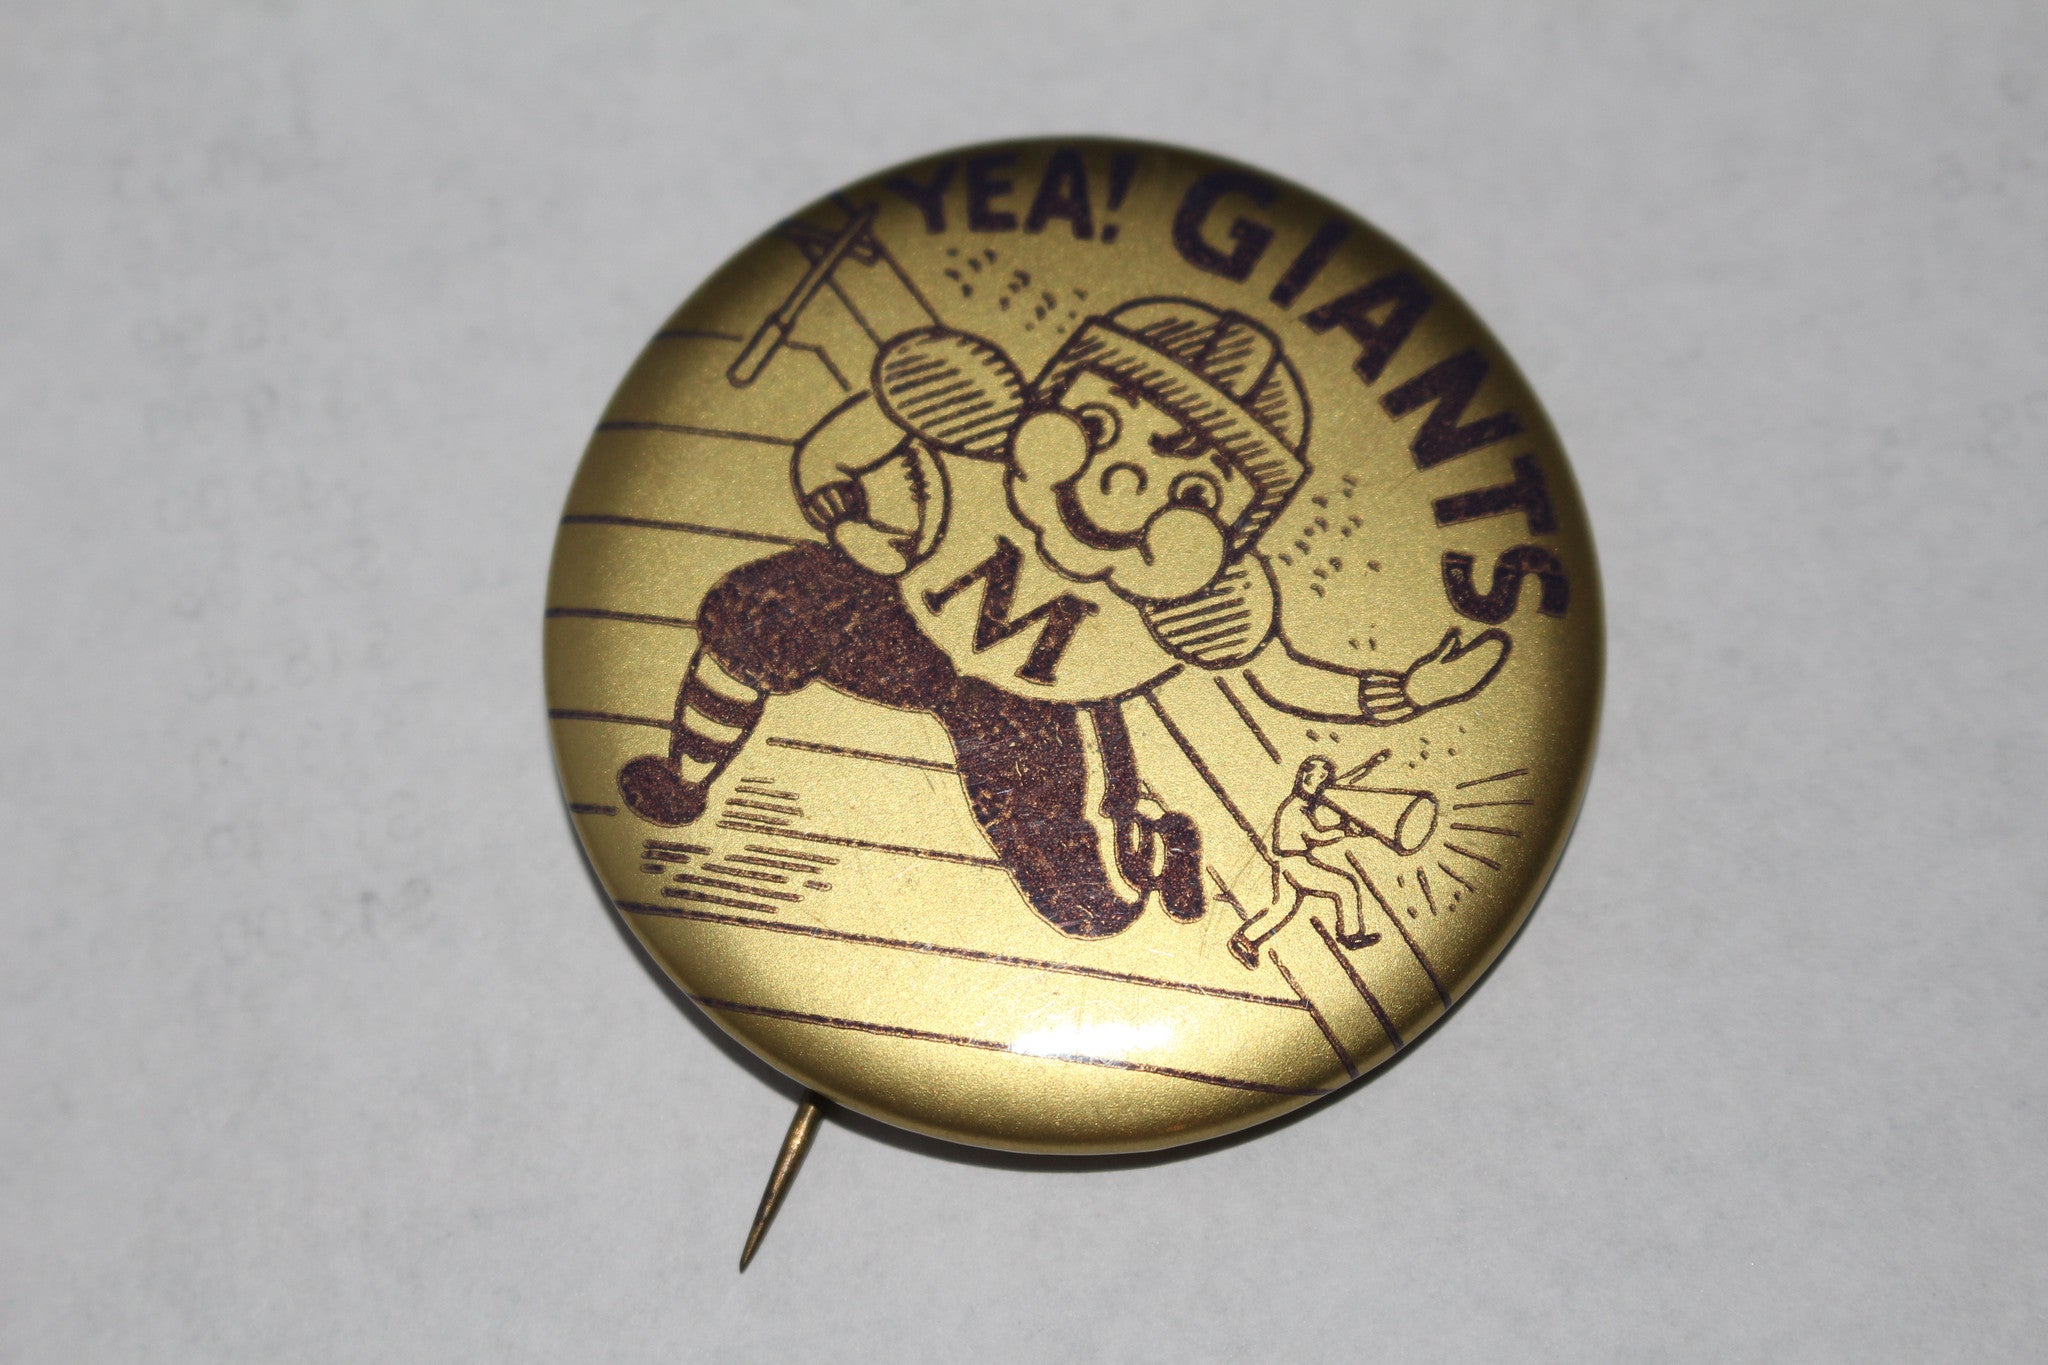 Vintage 1950's Marion, Indiana High School Football Pinback Button - Vintage Indy Sports